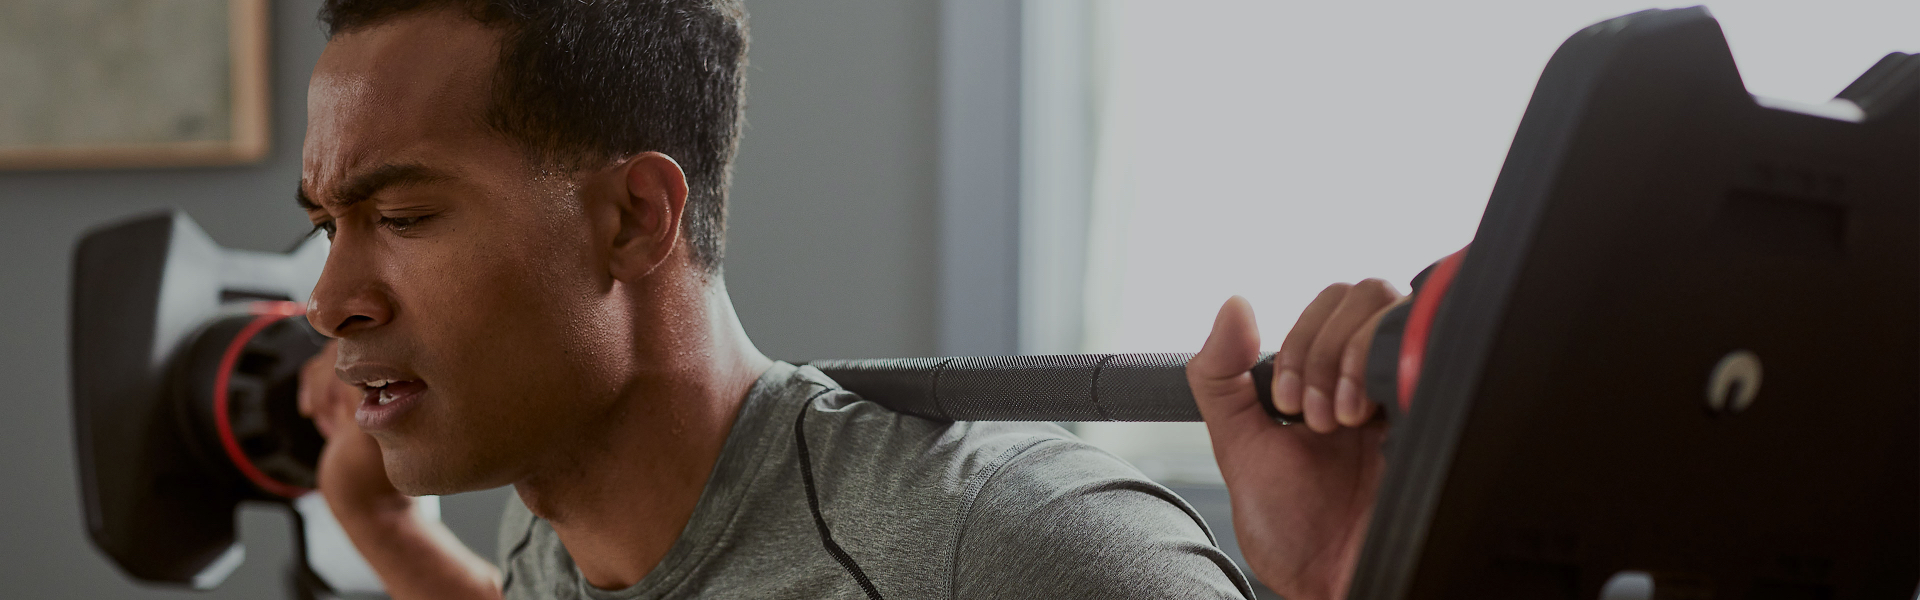 Muscular man working out with the SelectTech Adjustable Barbell